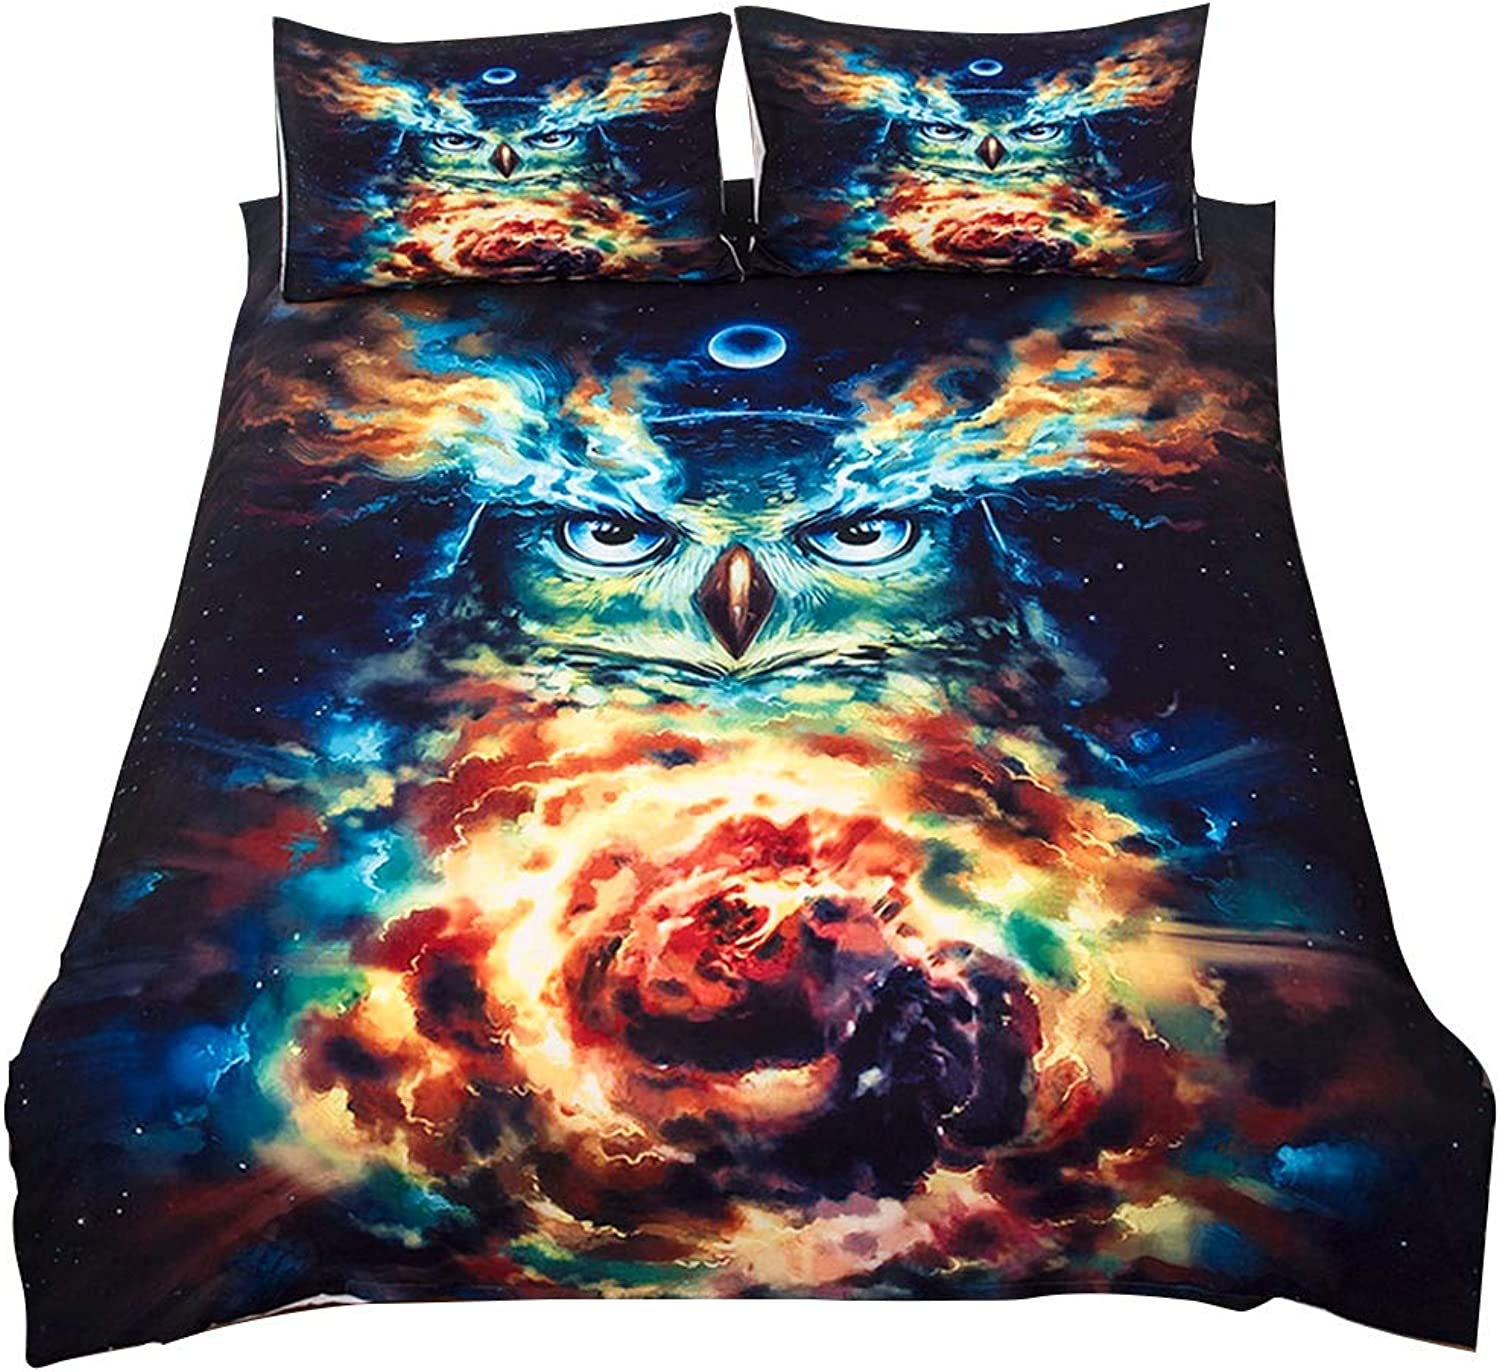 Bedding Set Psychedelic Owl Duvet Cover Moon Galaxy Bed Set for Adults 3pcs Set (Twin)